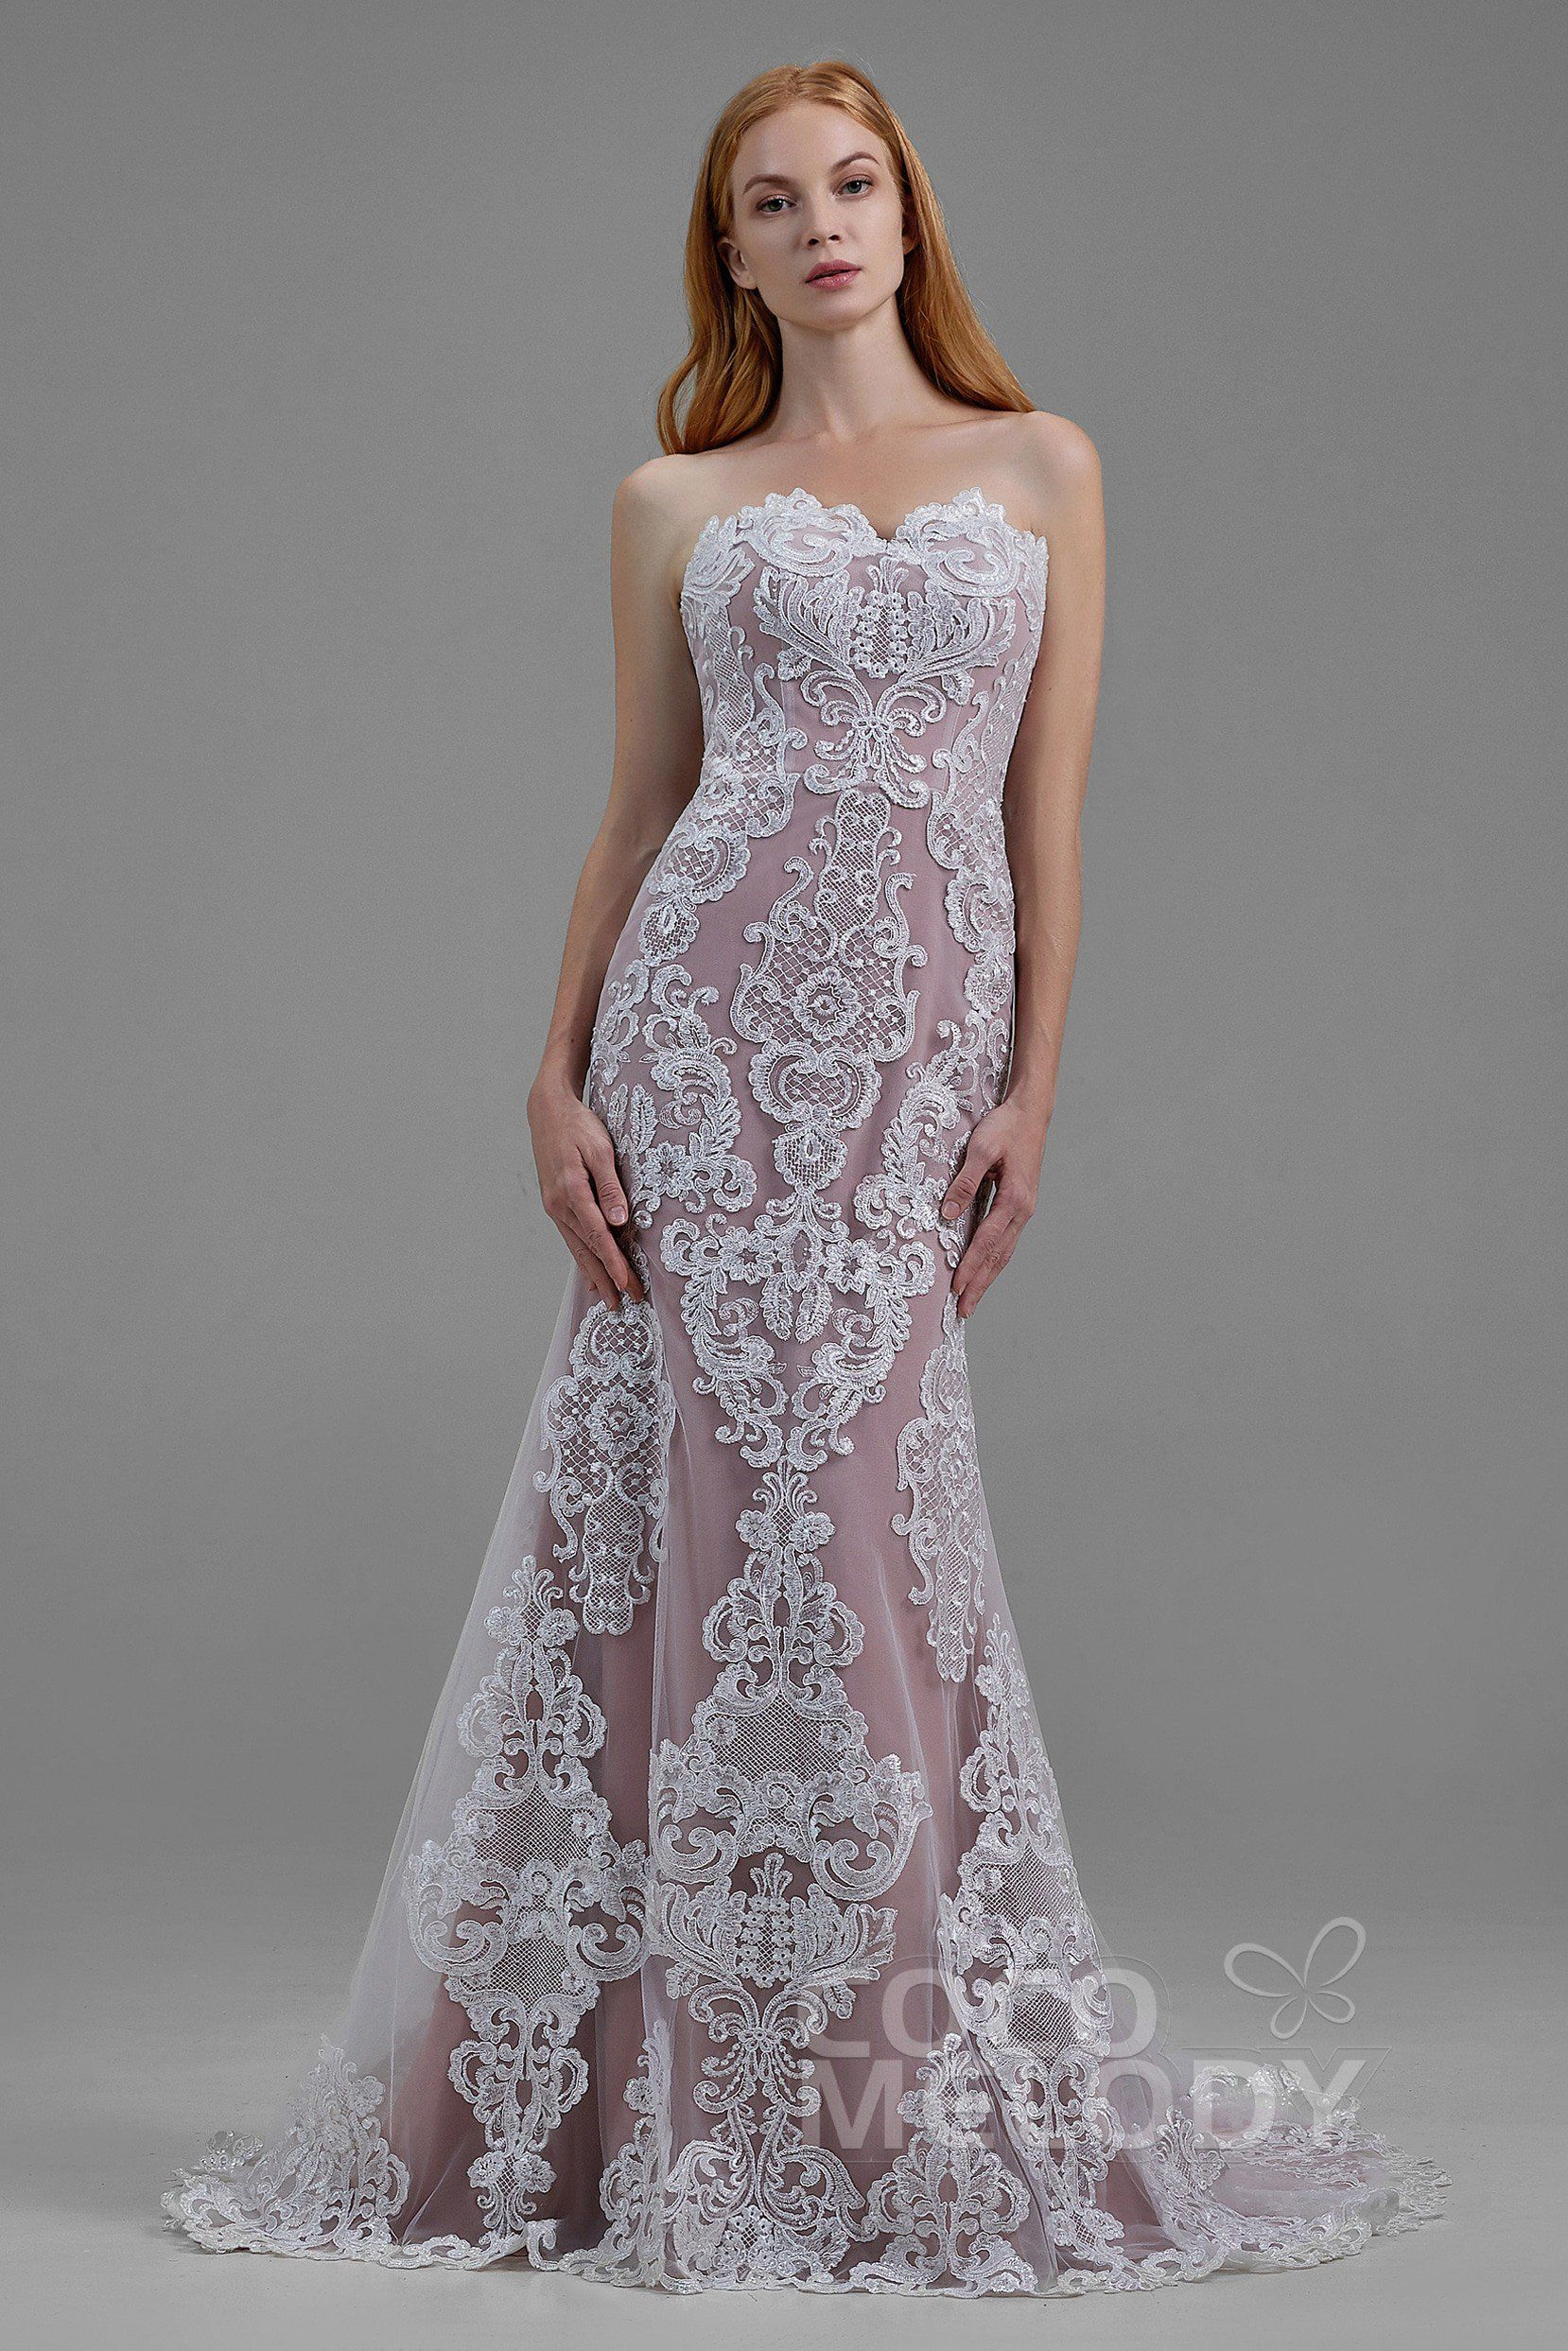 4a39740c1364 Trumpet-Mermaid Court Train Wedding Dress LD5859 | Cocomelody #cocomelody  #weddingdress #mermaidweddingdress #2019newcollection #ld5859